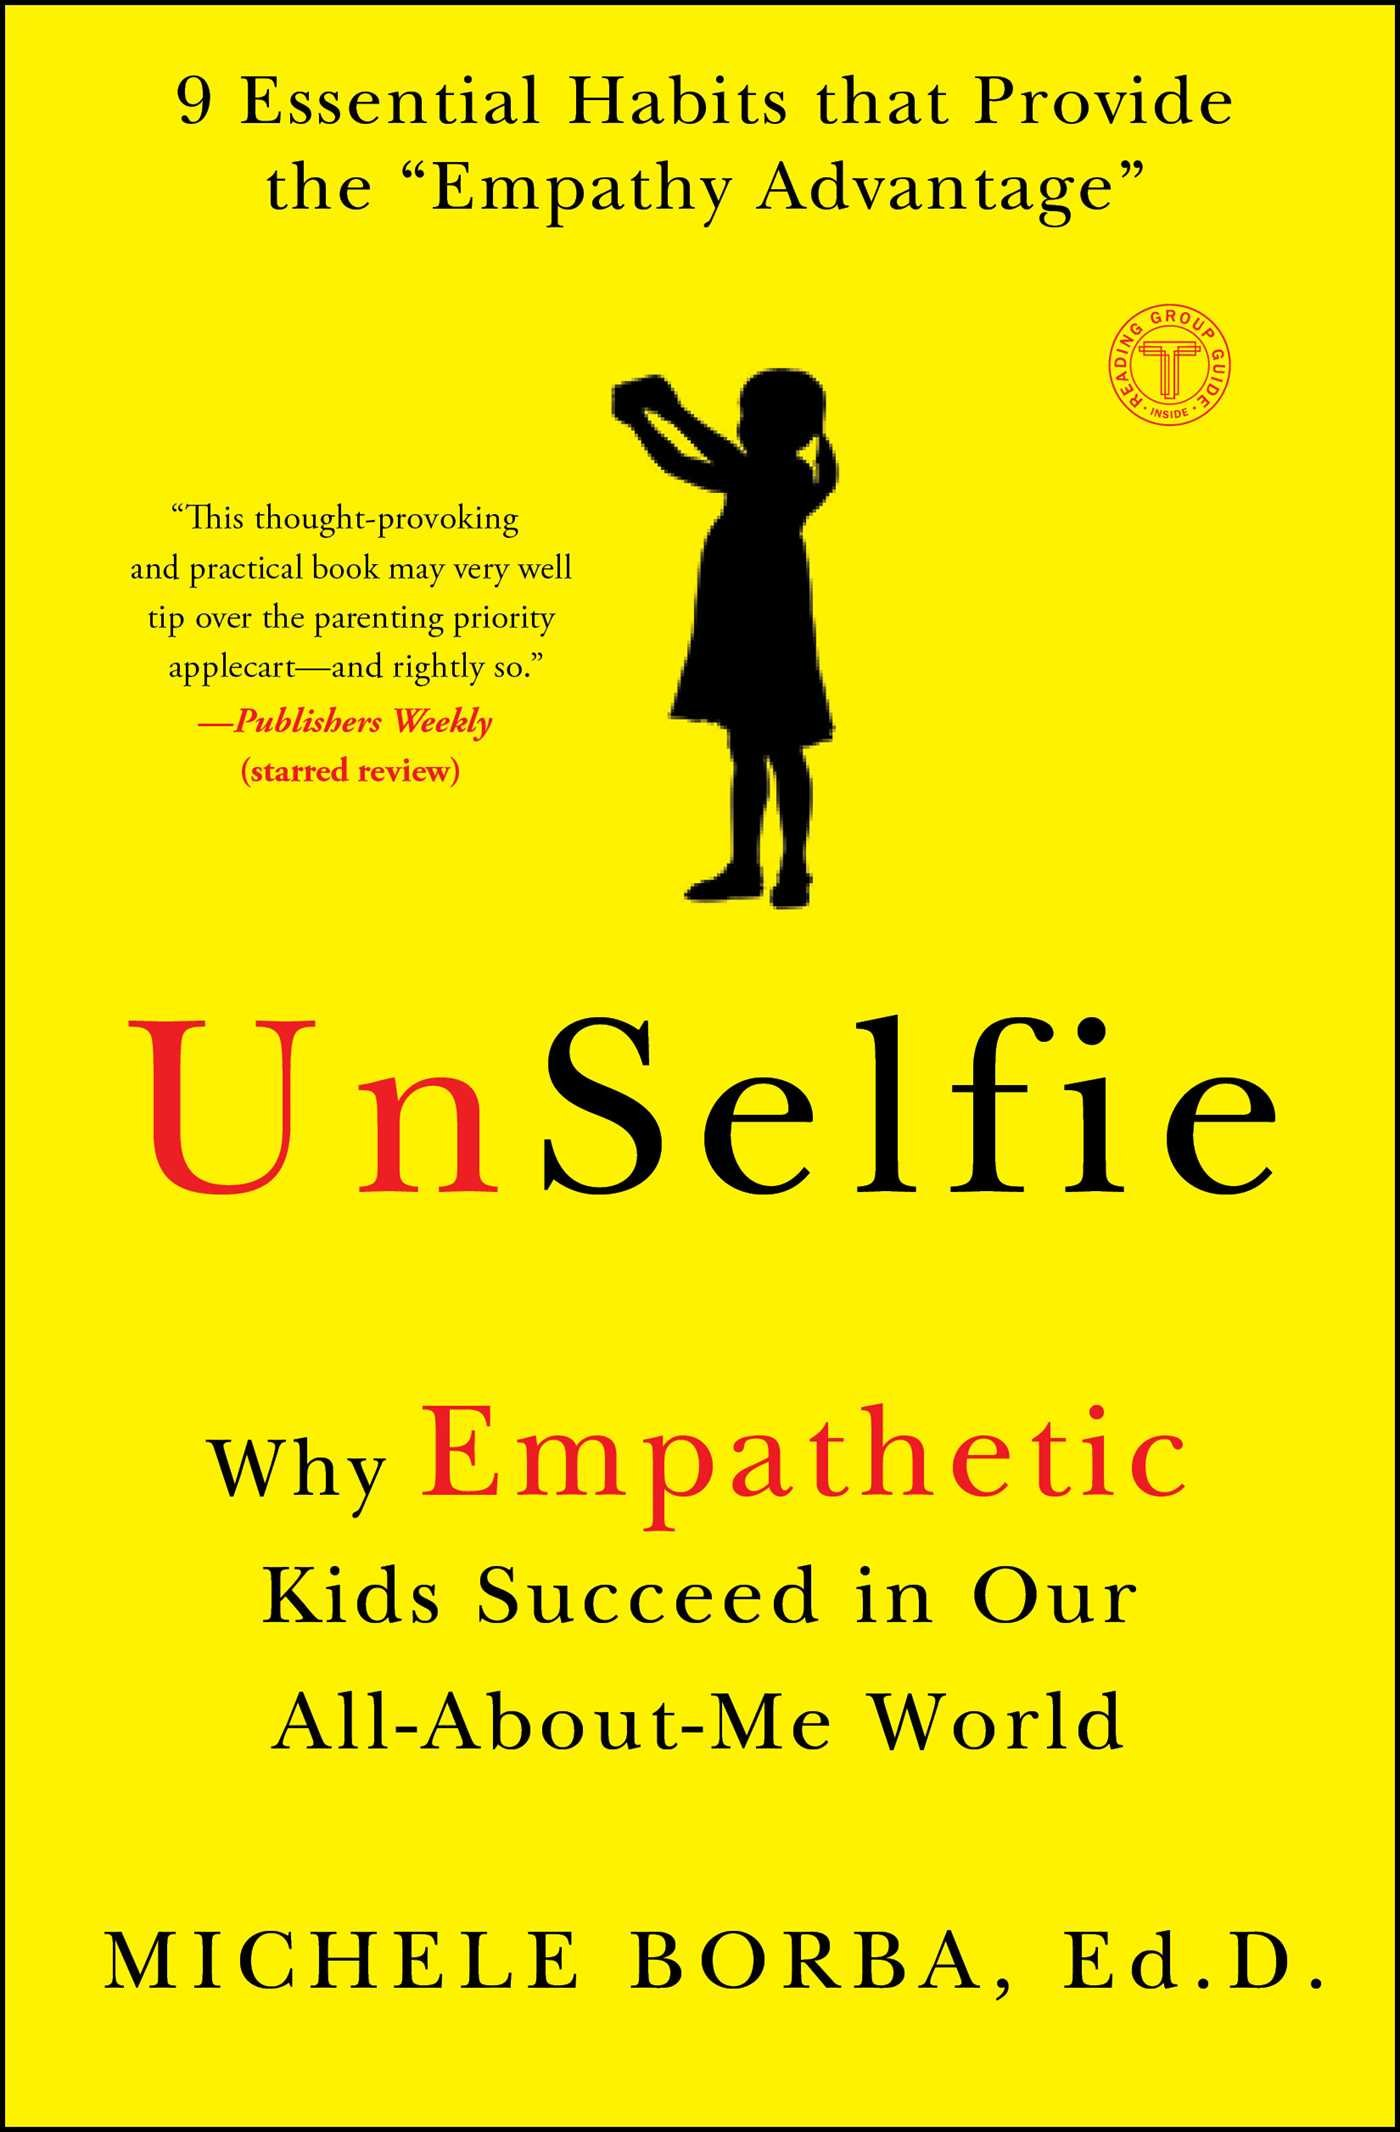 Image of yellow cover of the book Unselfie with a silhouette of a girl taking a selfie in black. Author: Michele Borba